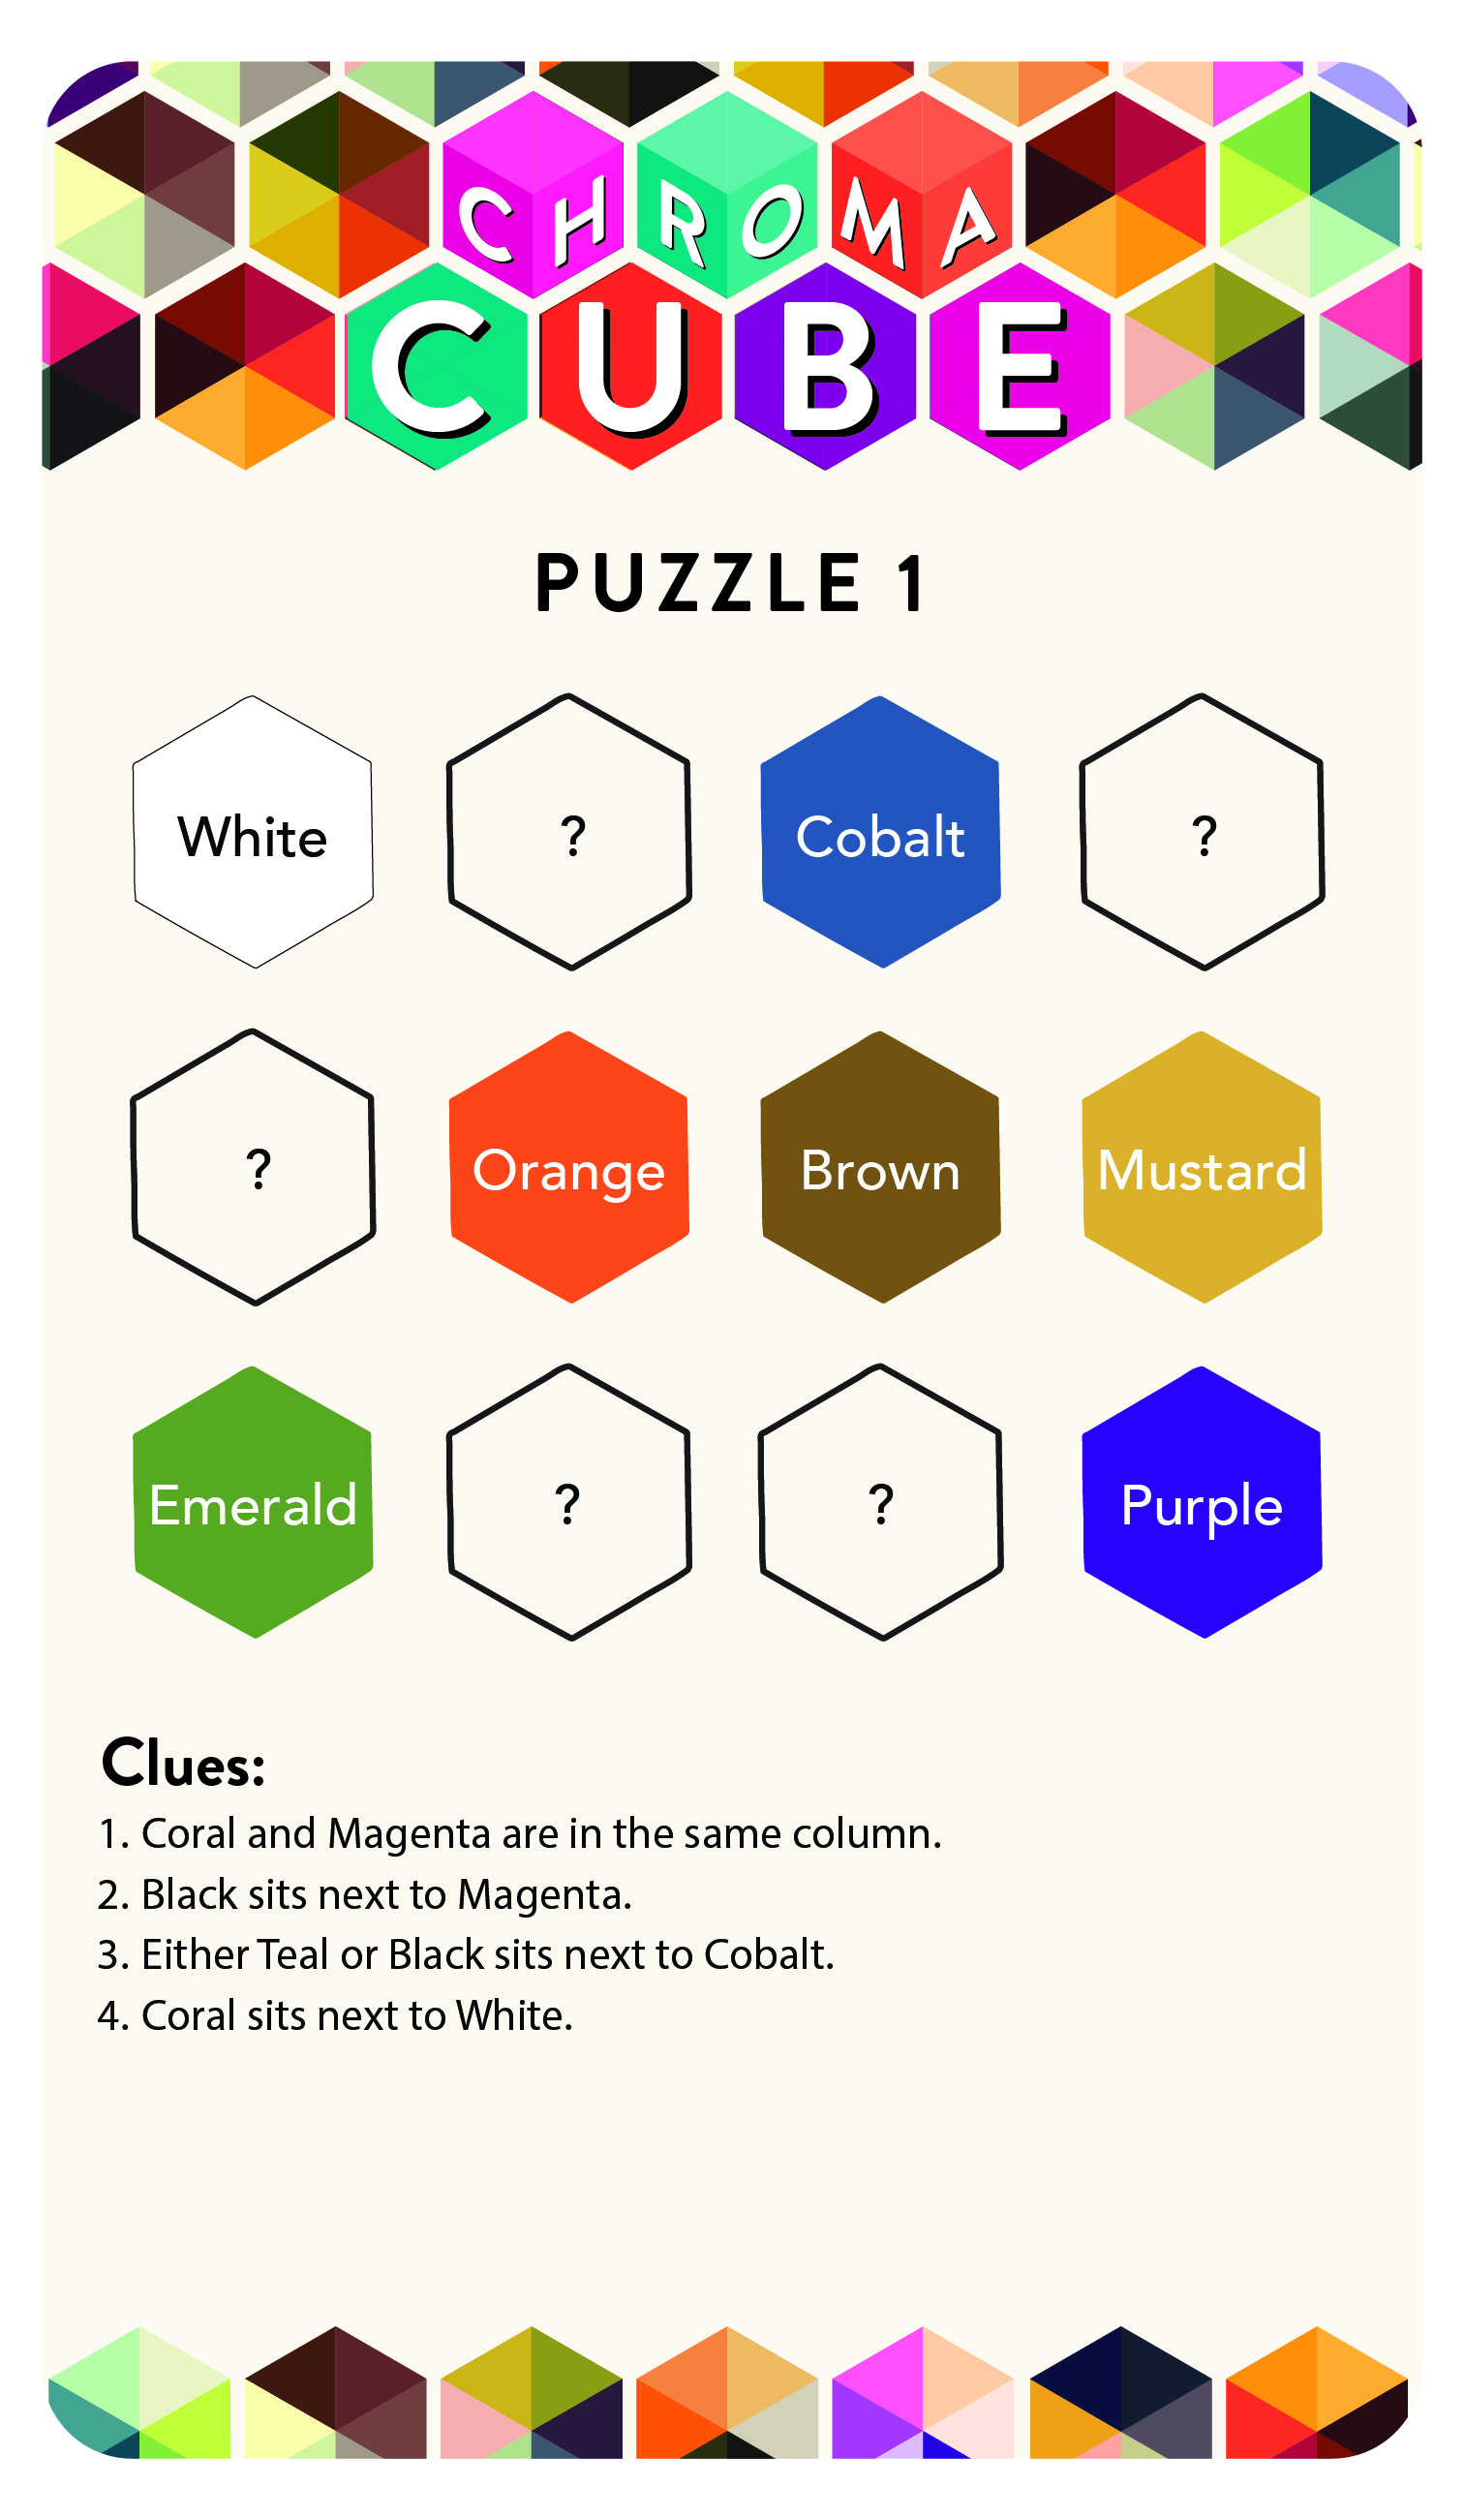 Chroma Cube Puzzle 1 - Puzzle Side